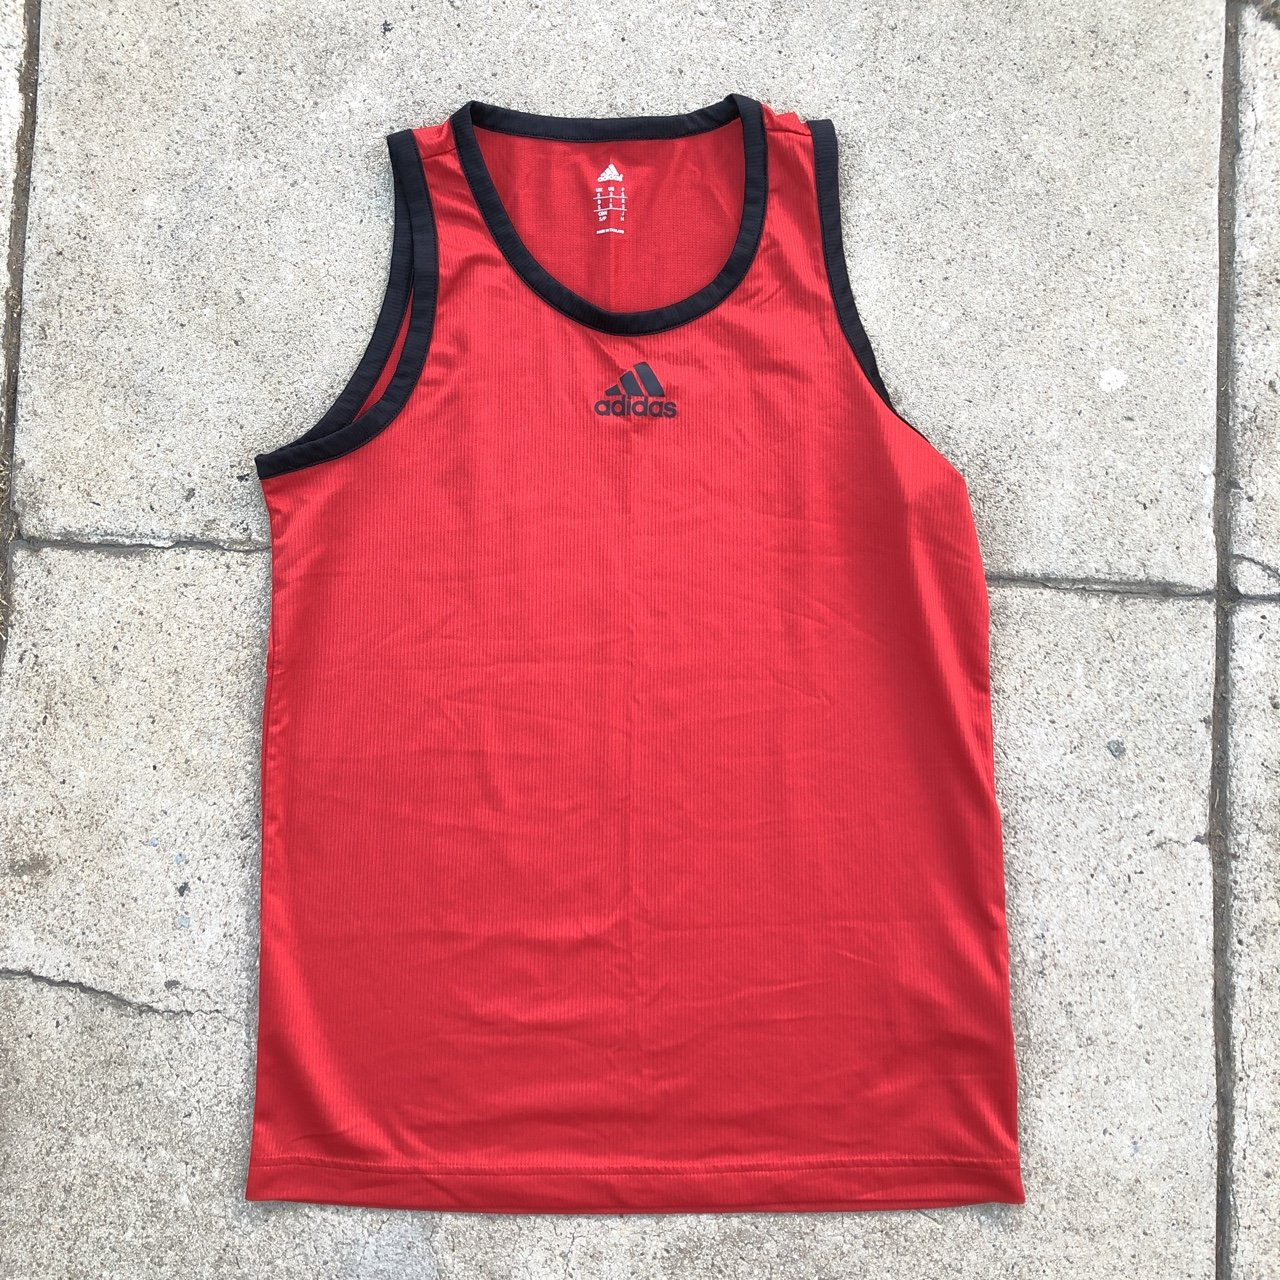 d71674f17f06f Red n black adidas tank top. Pair wit some black dickies in) - Depop